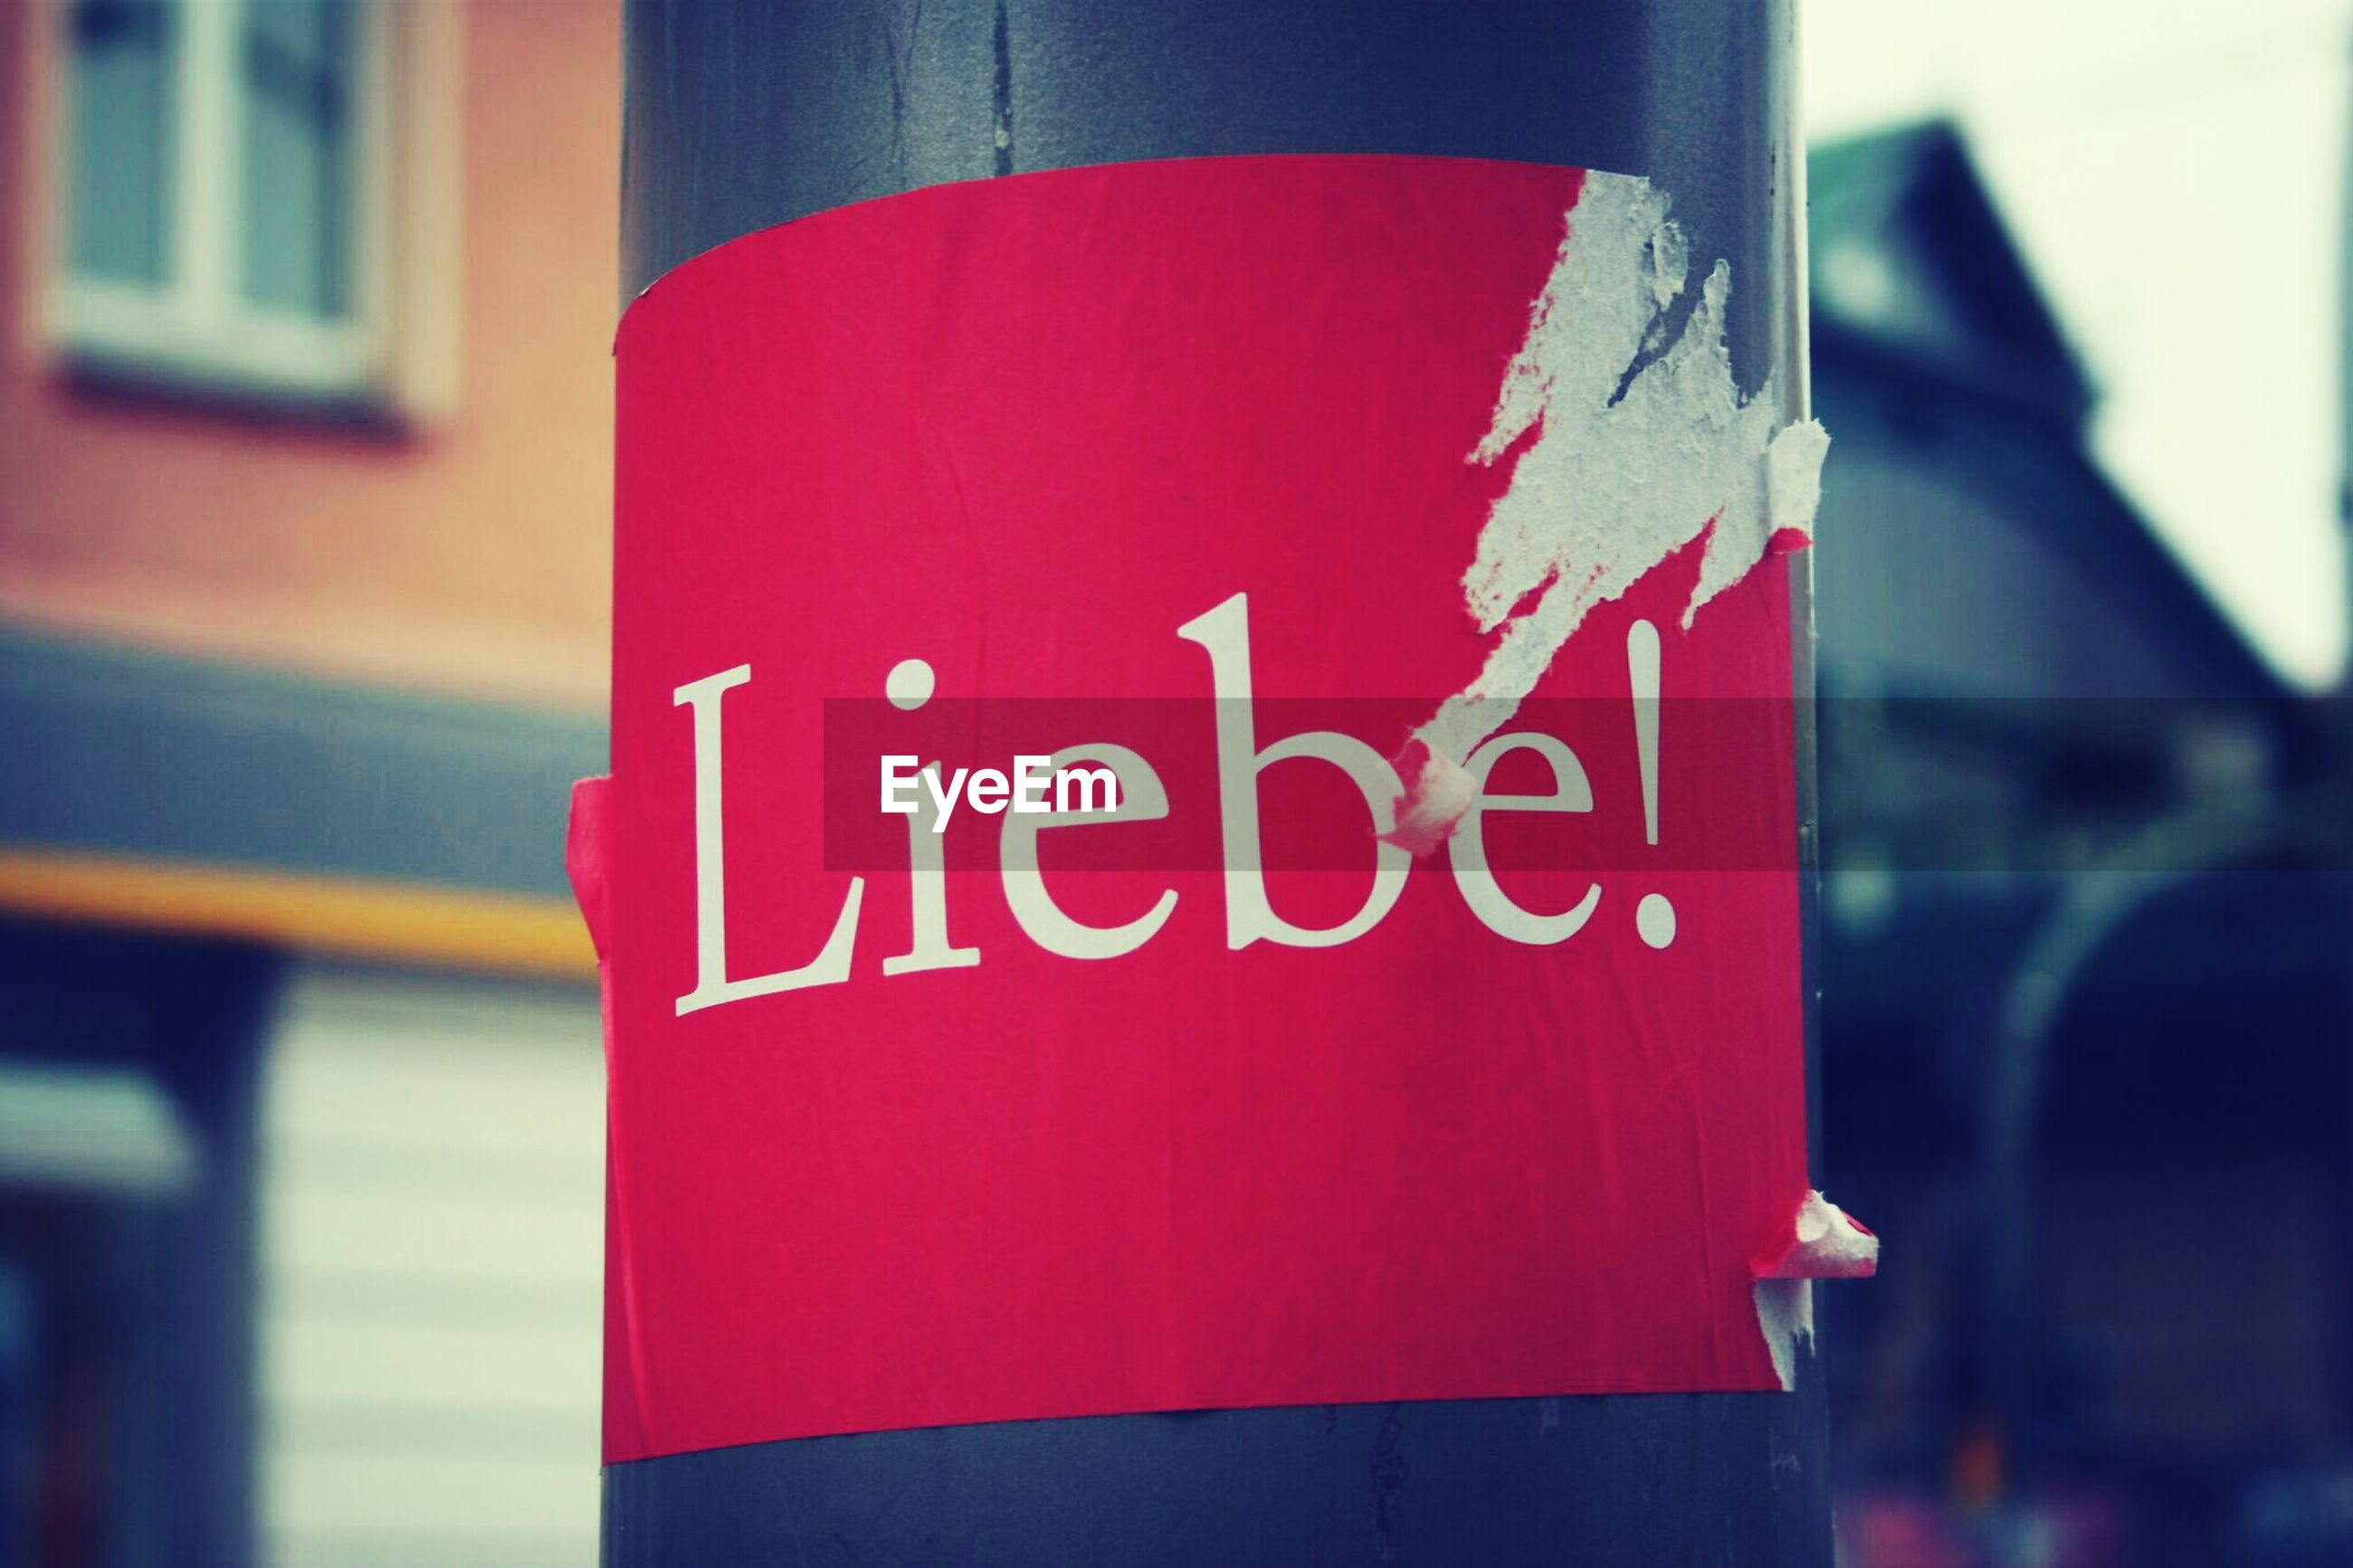 Liebe text on pole